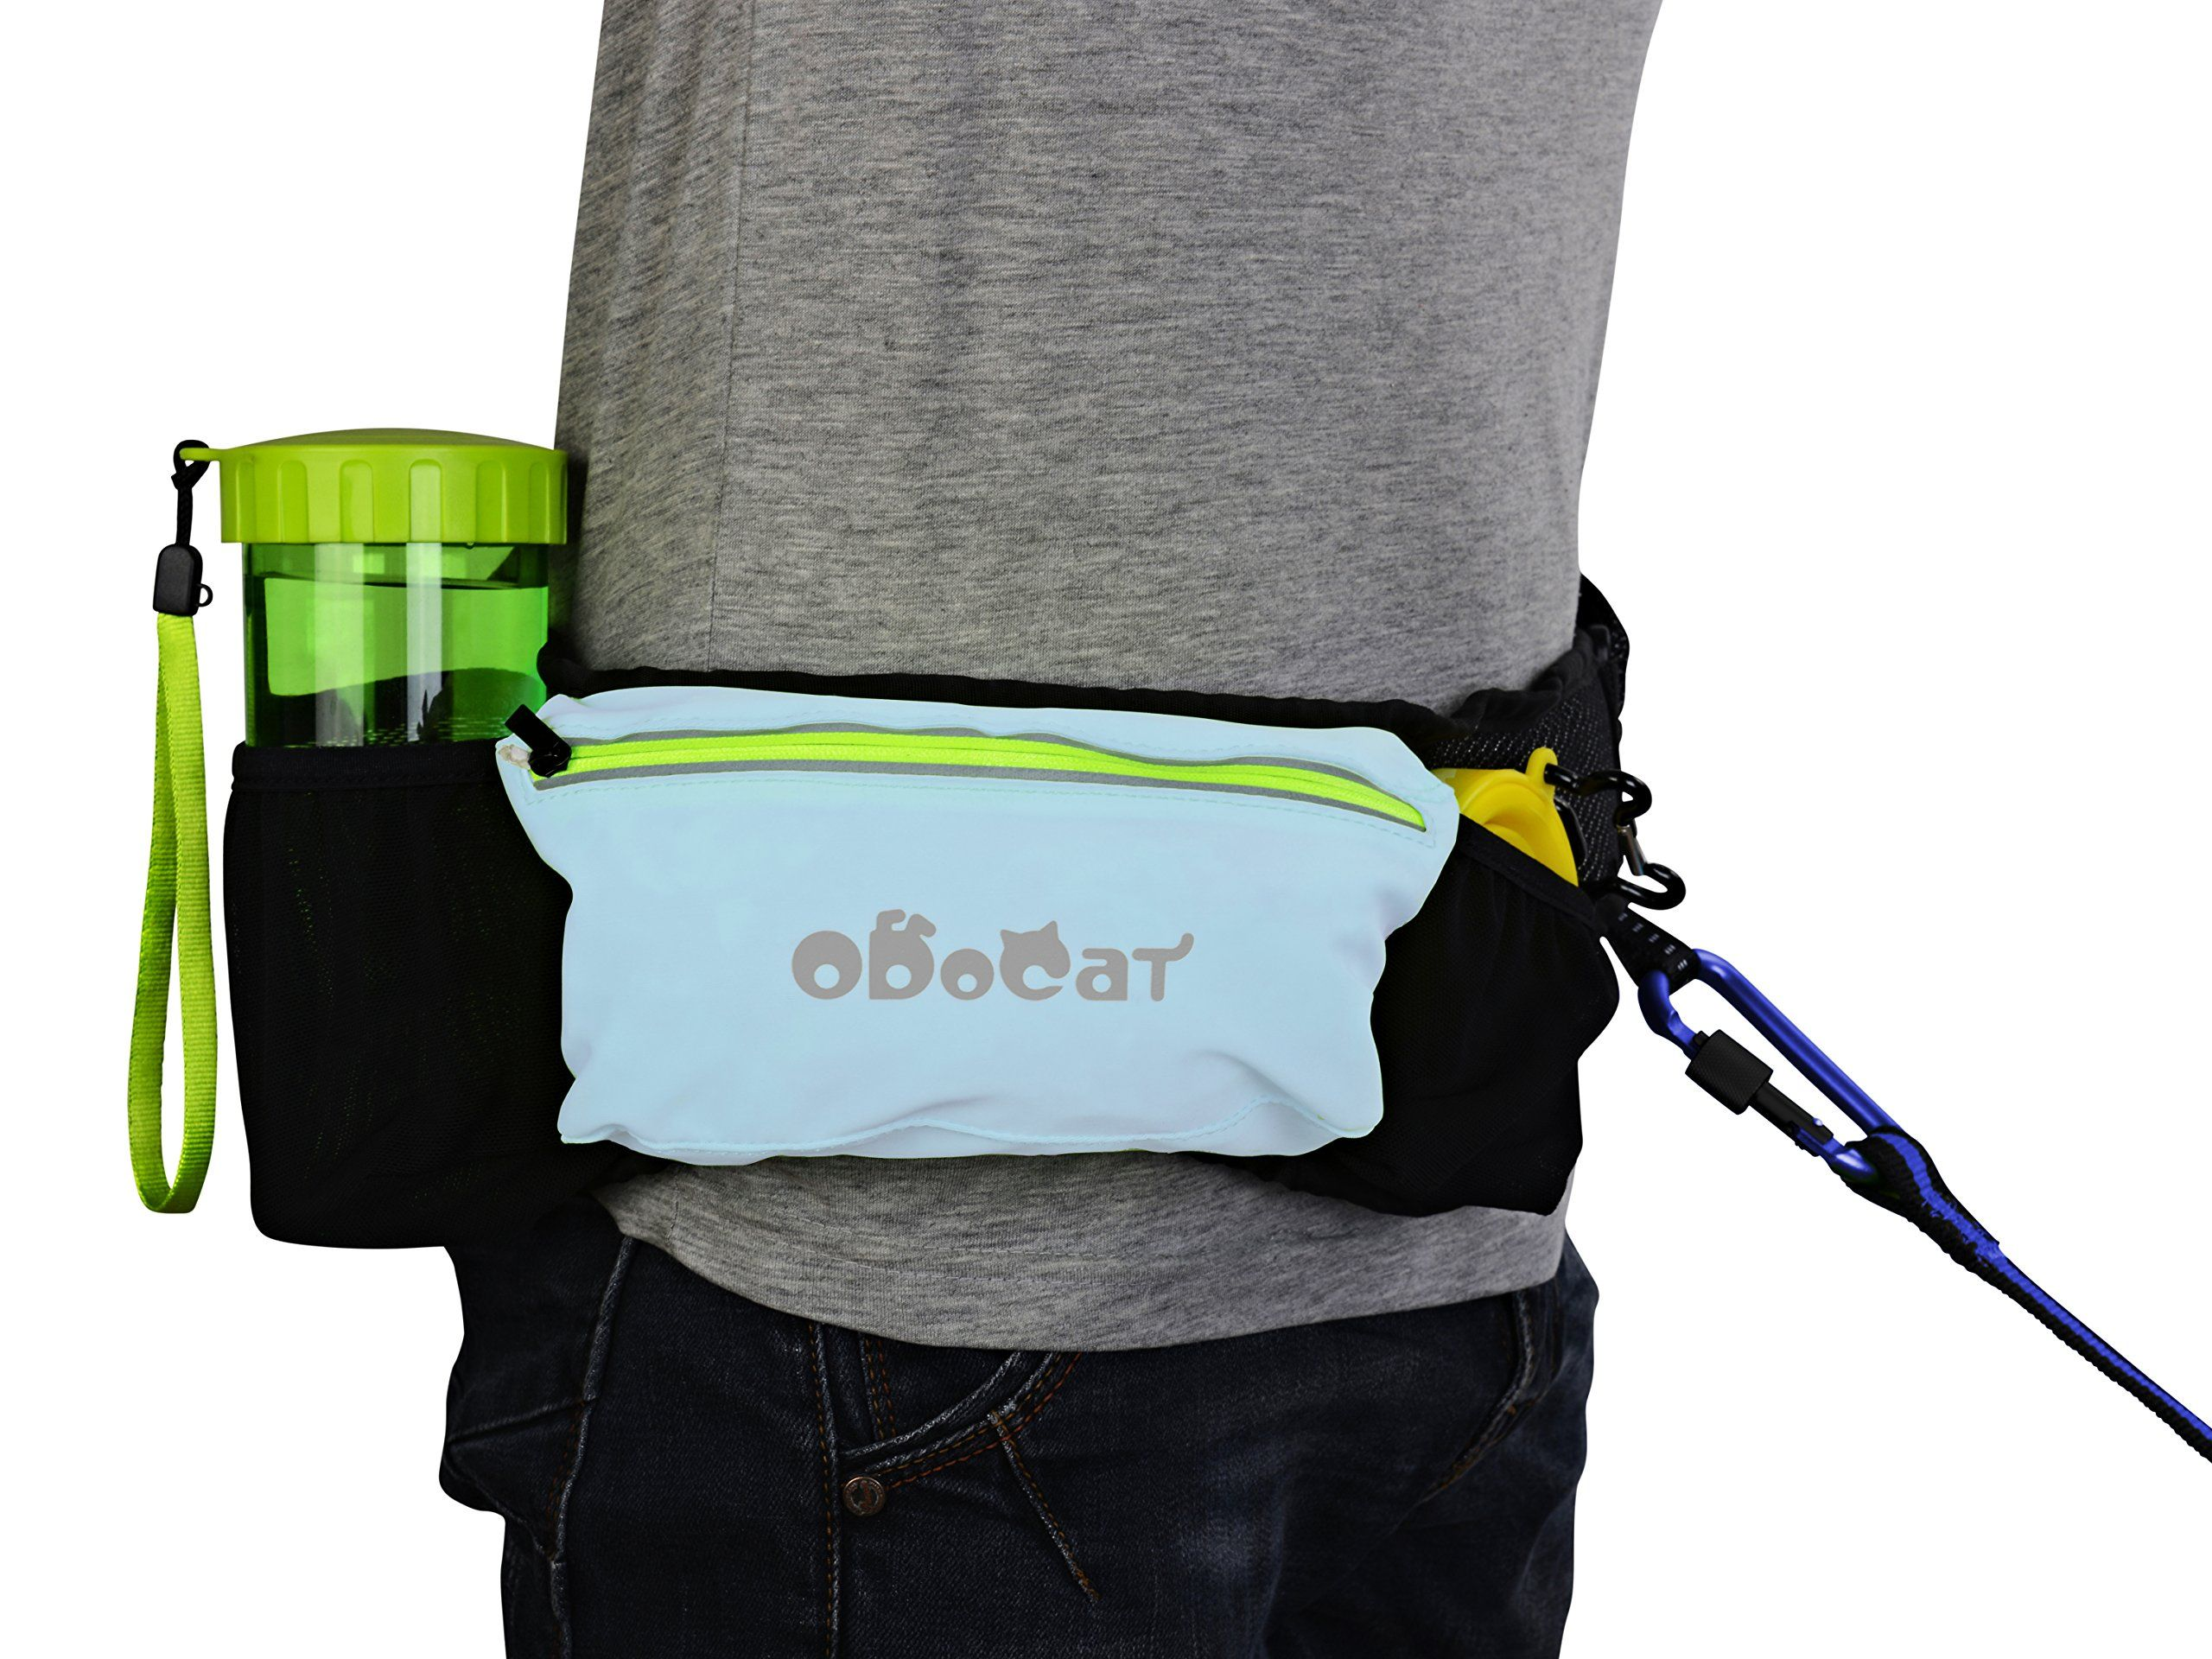 Hands Free Dog Leash By Odocat For Walking Jogging Running With